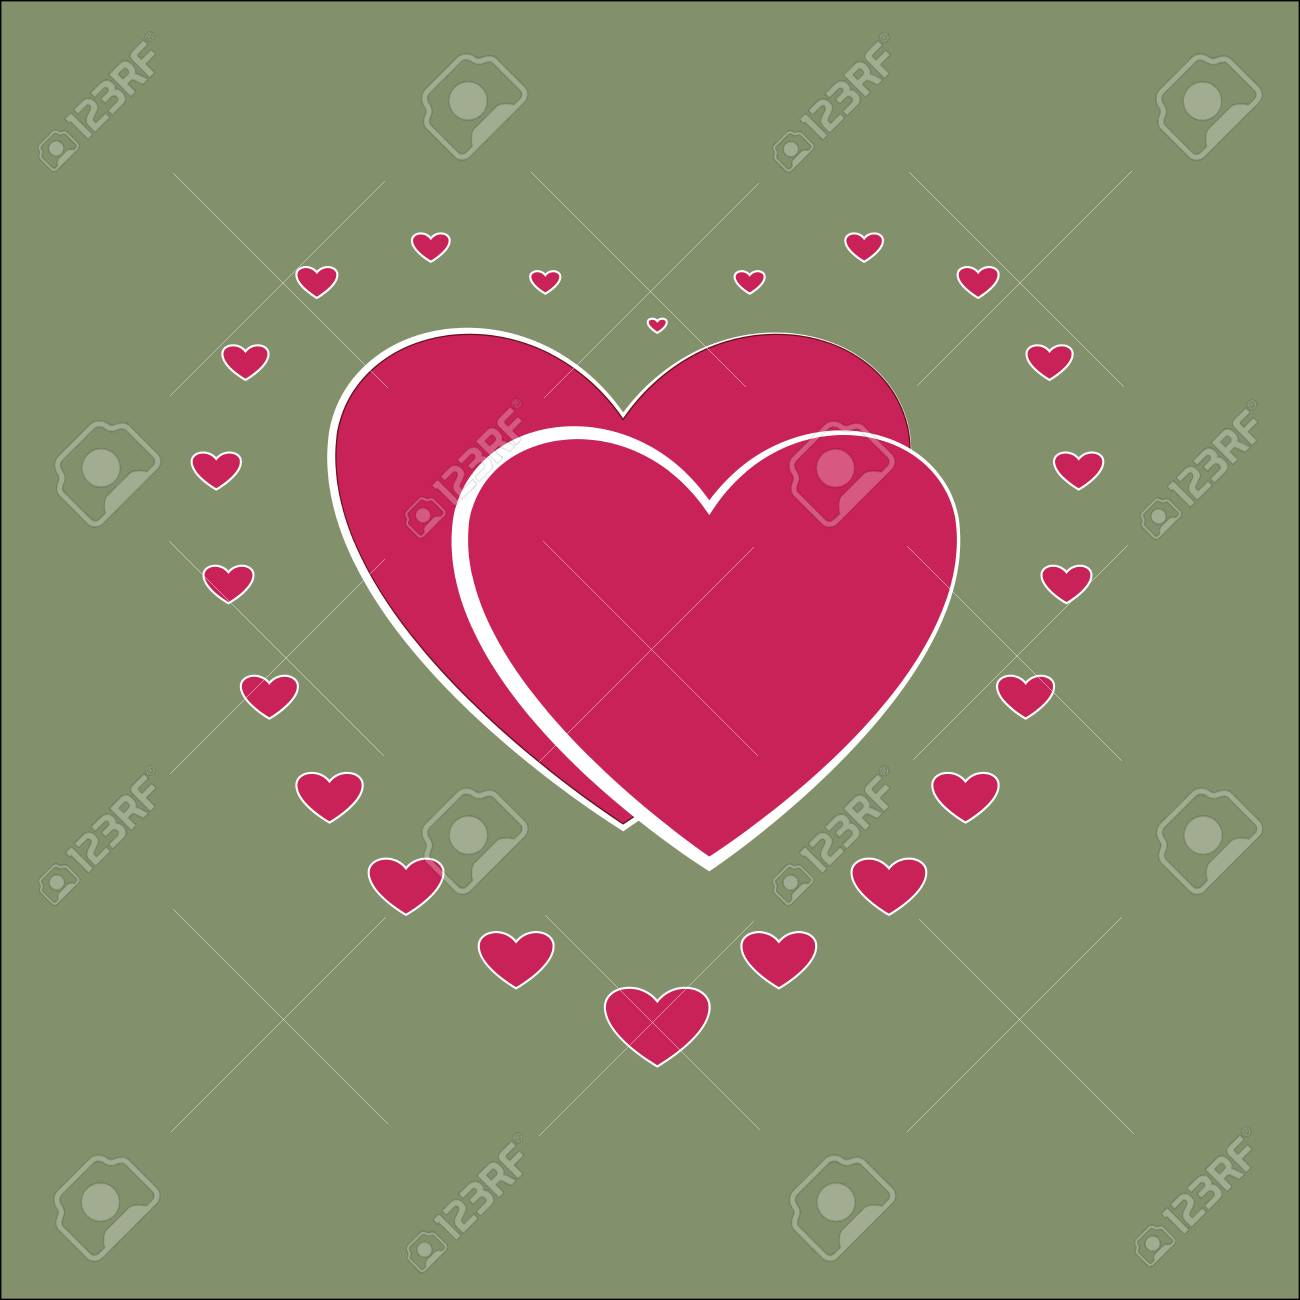 Heart Small Around Two Heard Pink Sign On Green Background 1300x1300